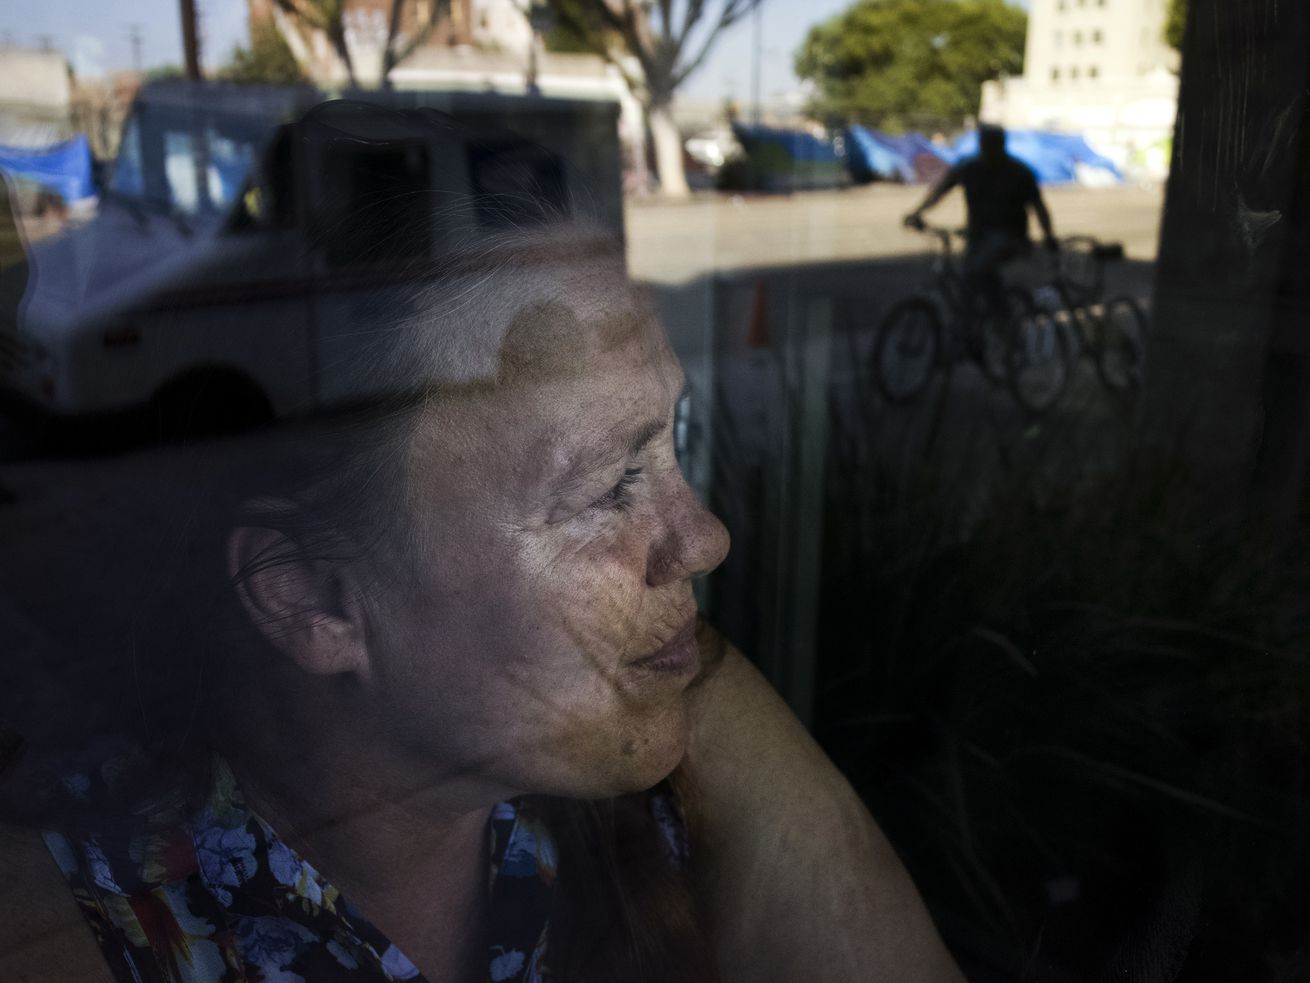 A person looking through a window on which is reflected an outdoor urban scene.